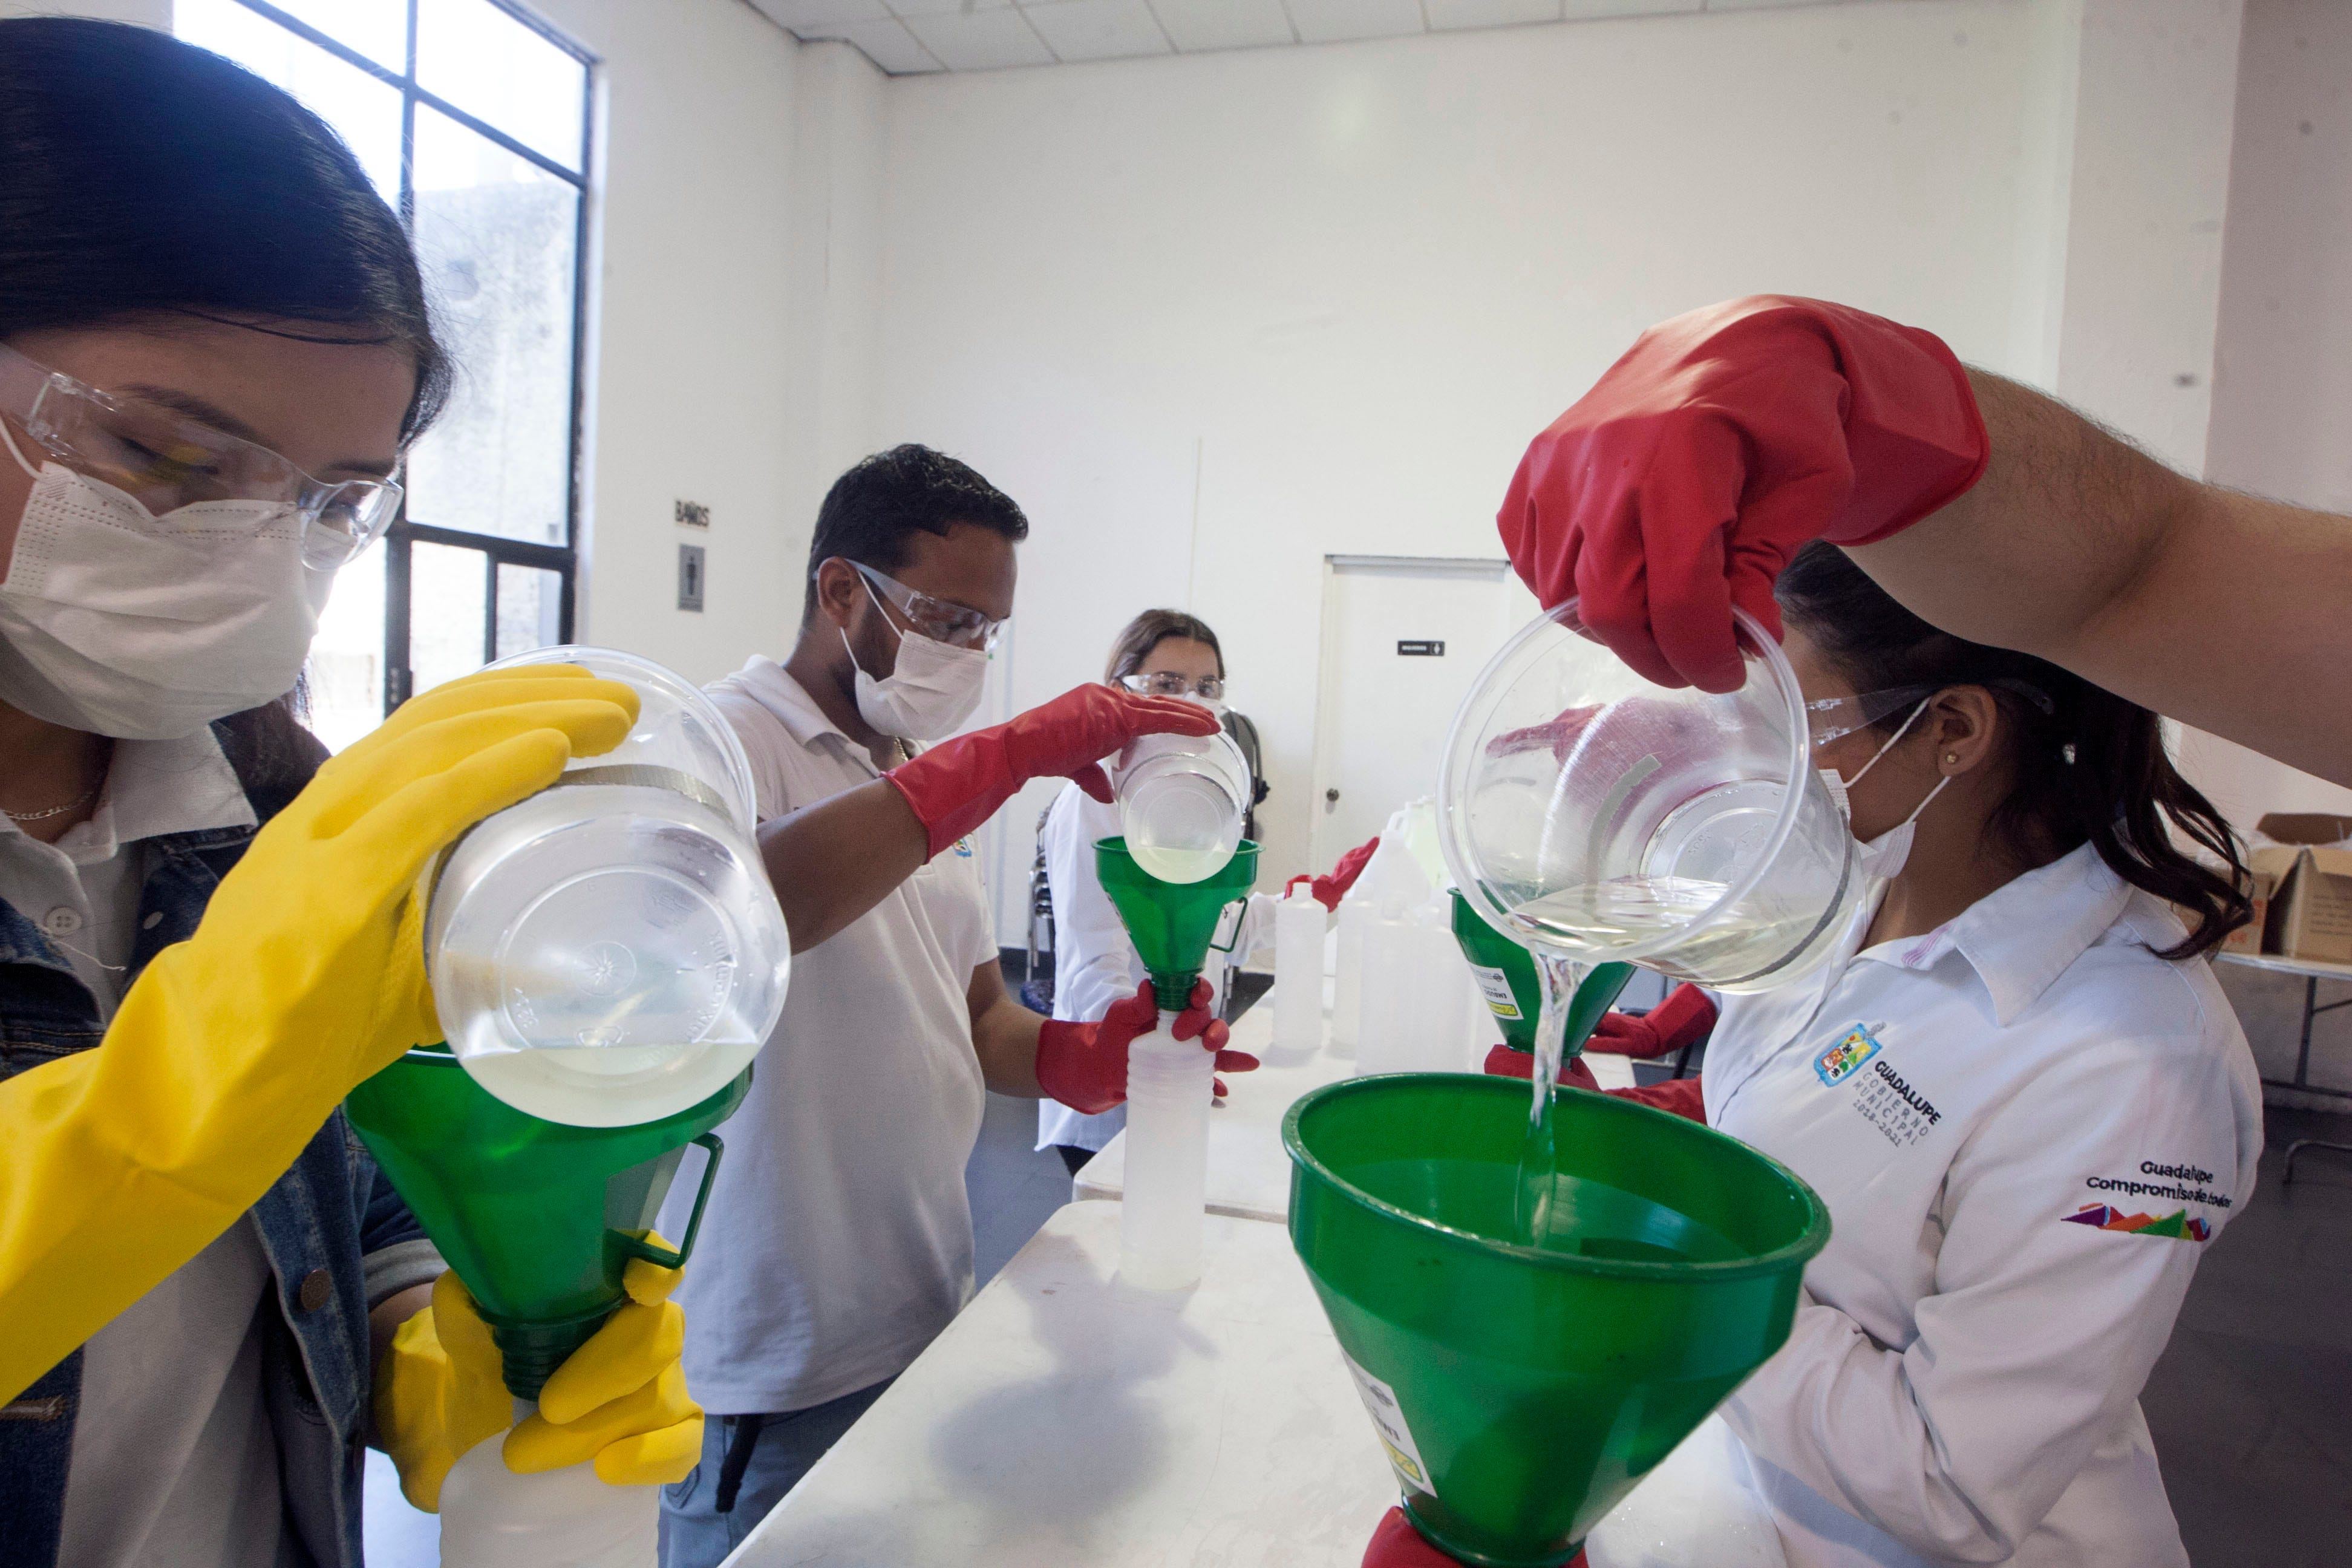 Slide 49 of 113: Volunteers pack hand sanitizer and disinfectant that will be distributed for free in Guadalupe, Nuevo Leon, Mexico on March 18 2020, as a preventive measure against the spread of the new coronavirus, COVID-19.